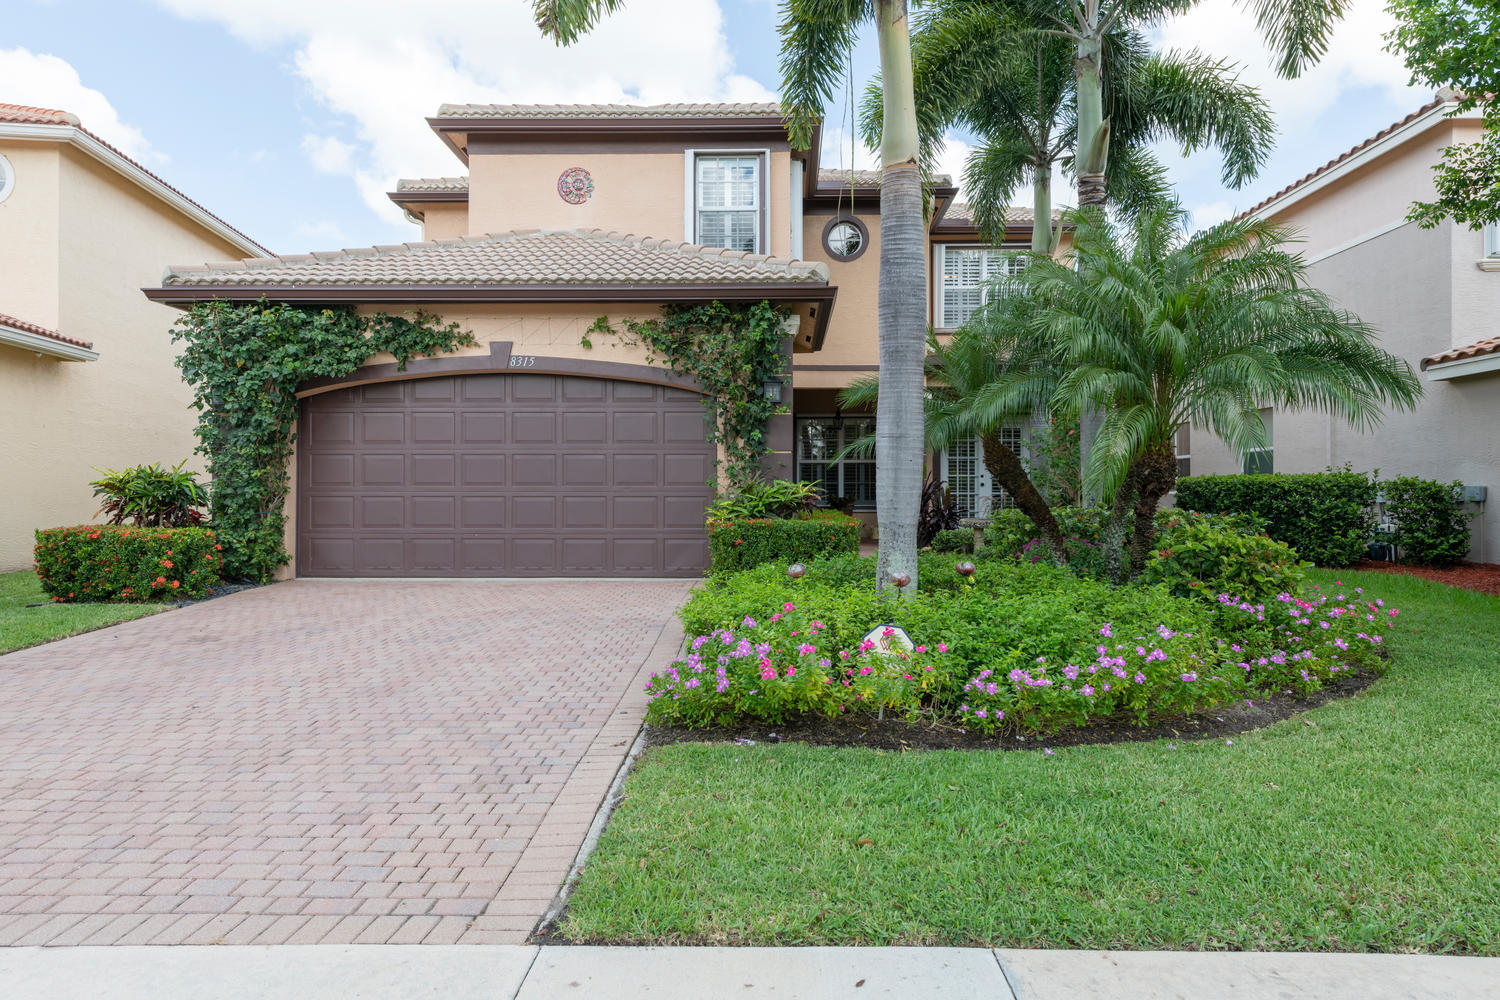 8315 Emerald Winds Circle  Boynton Beach, FL 33473